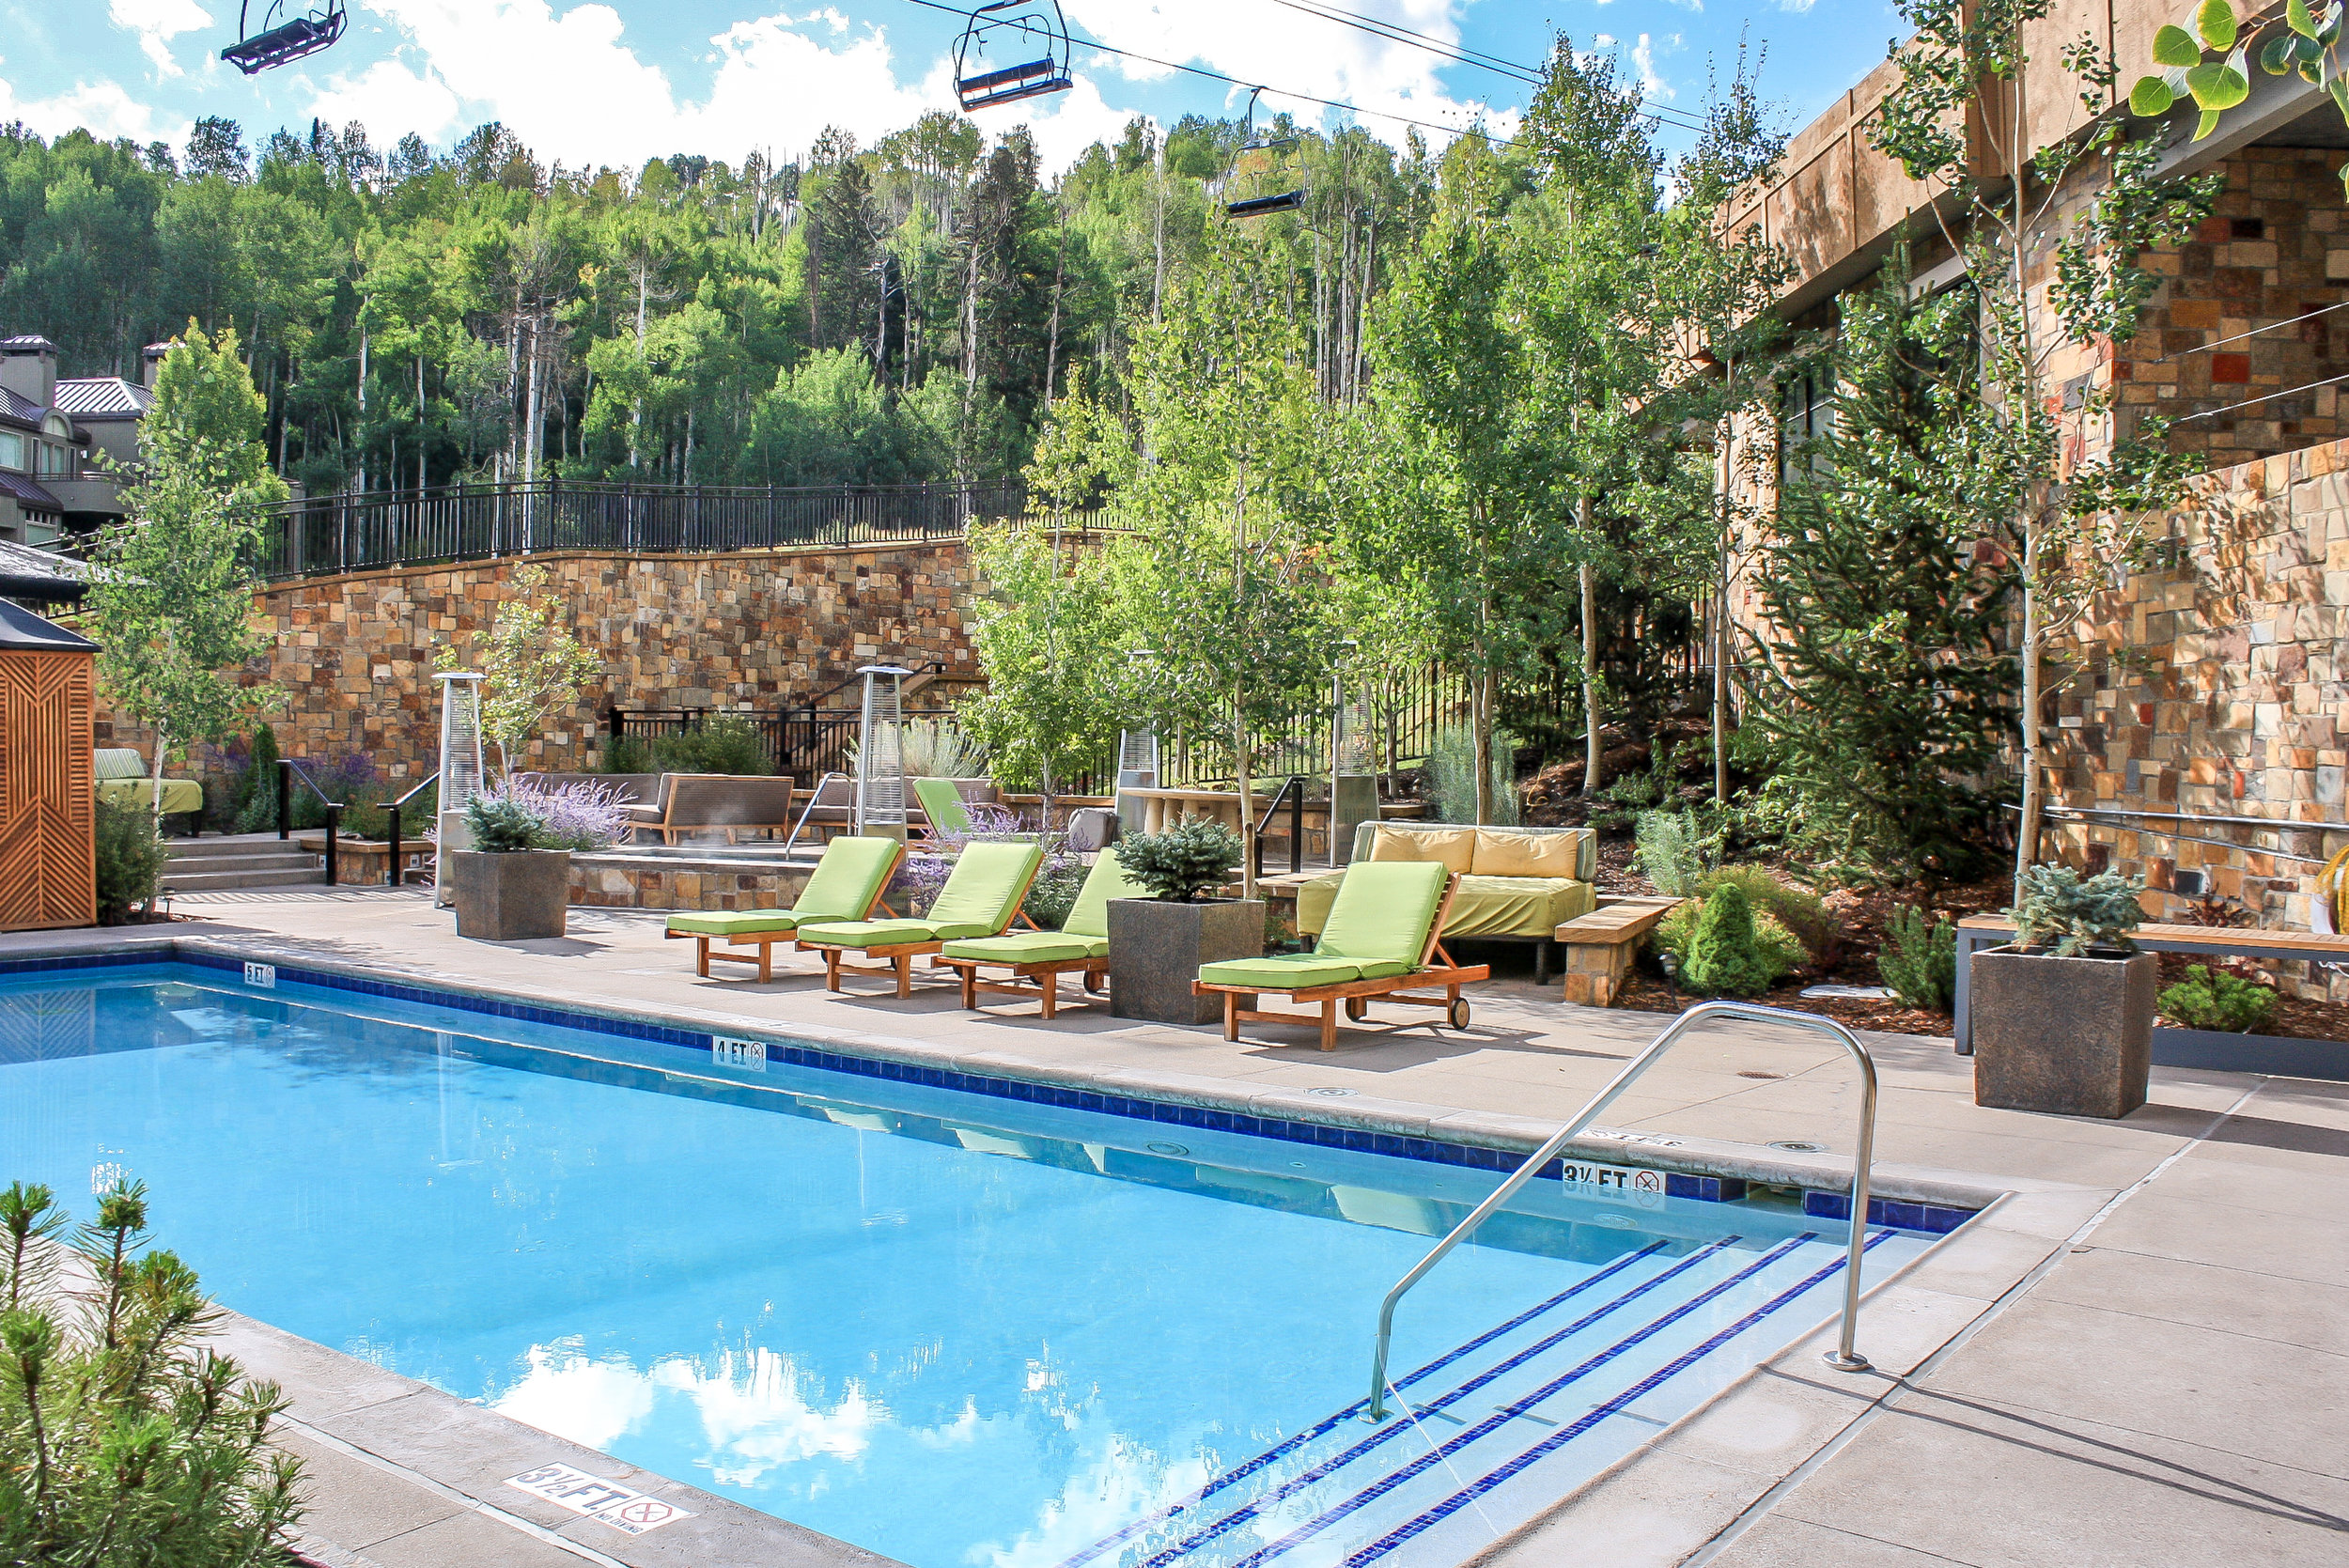 """<img src="""" studioINSITE_Viceroy_Pool_Deck_ """"alt=""""  Resort, mountain resort, hotel, vacation homes, condominium, roof deck, design over structure, pool, site planning, landscape architecture  """" title=""""Viceroy at Snowmass""""/>"""